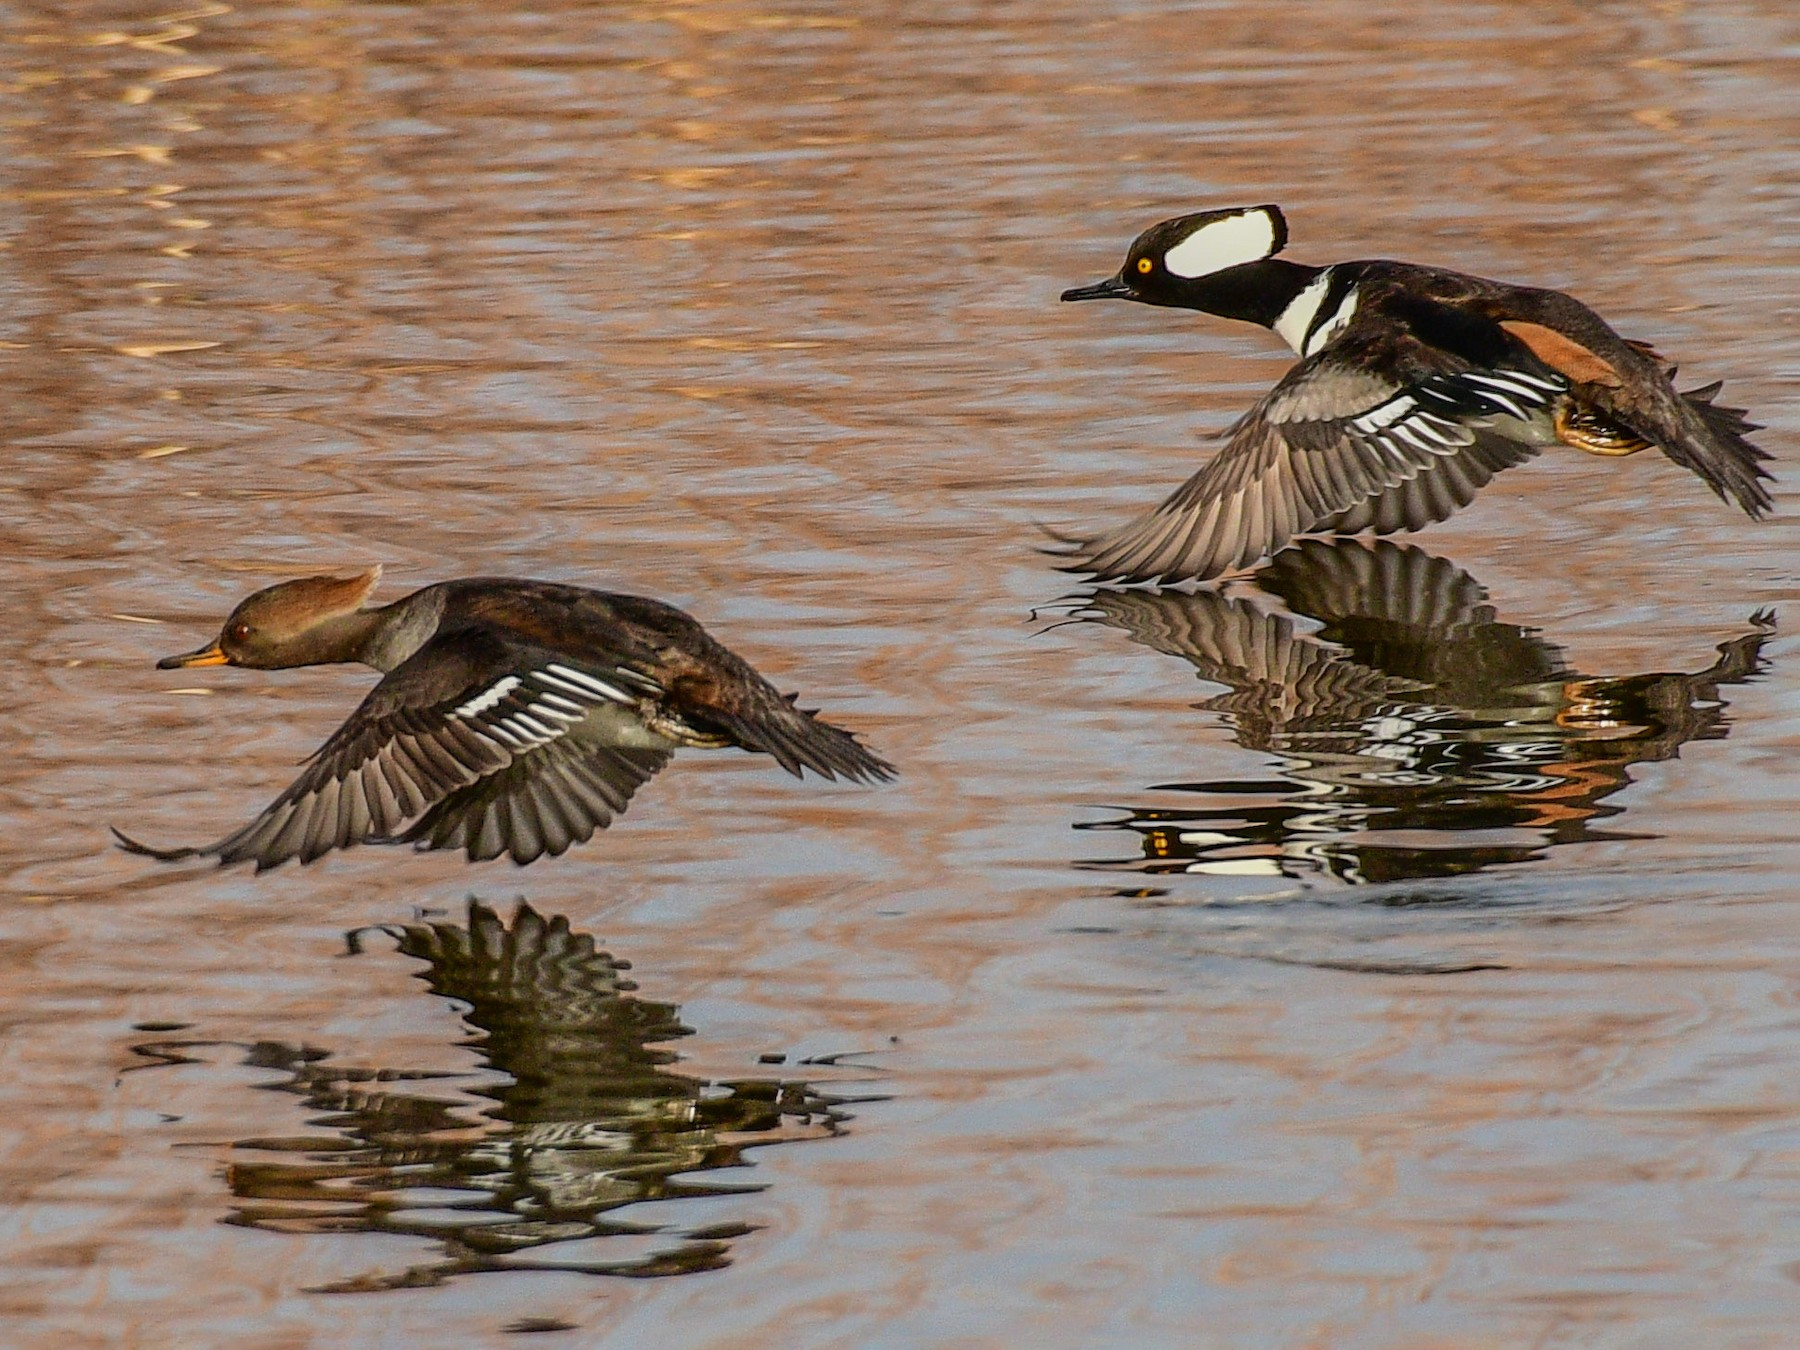 Hooded Merganser - Libby Burtner